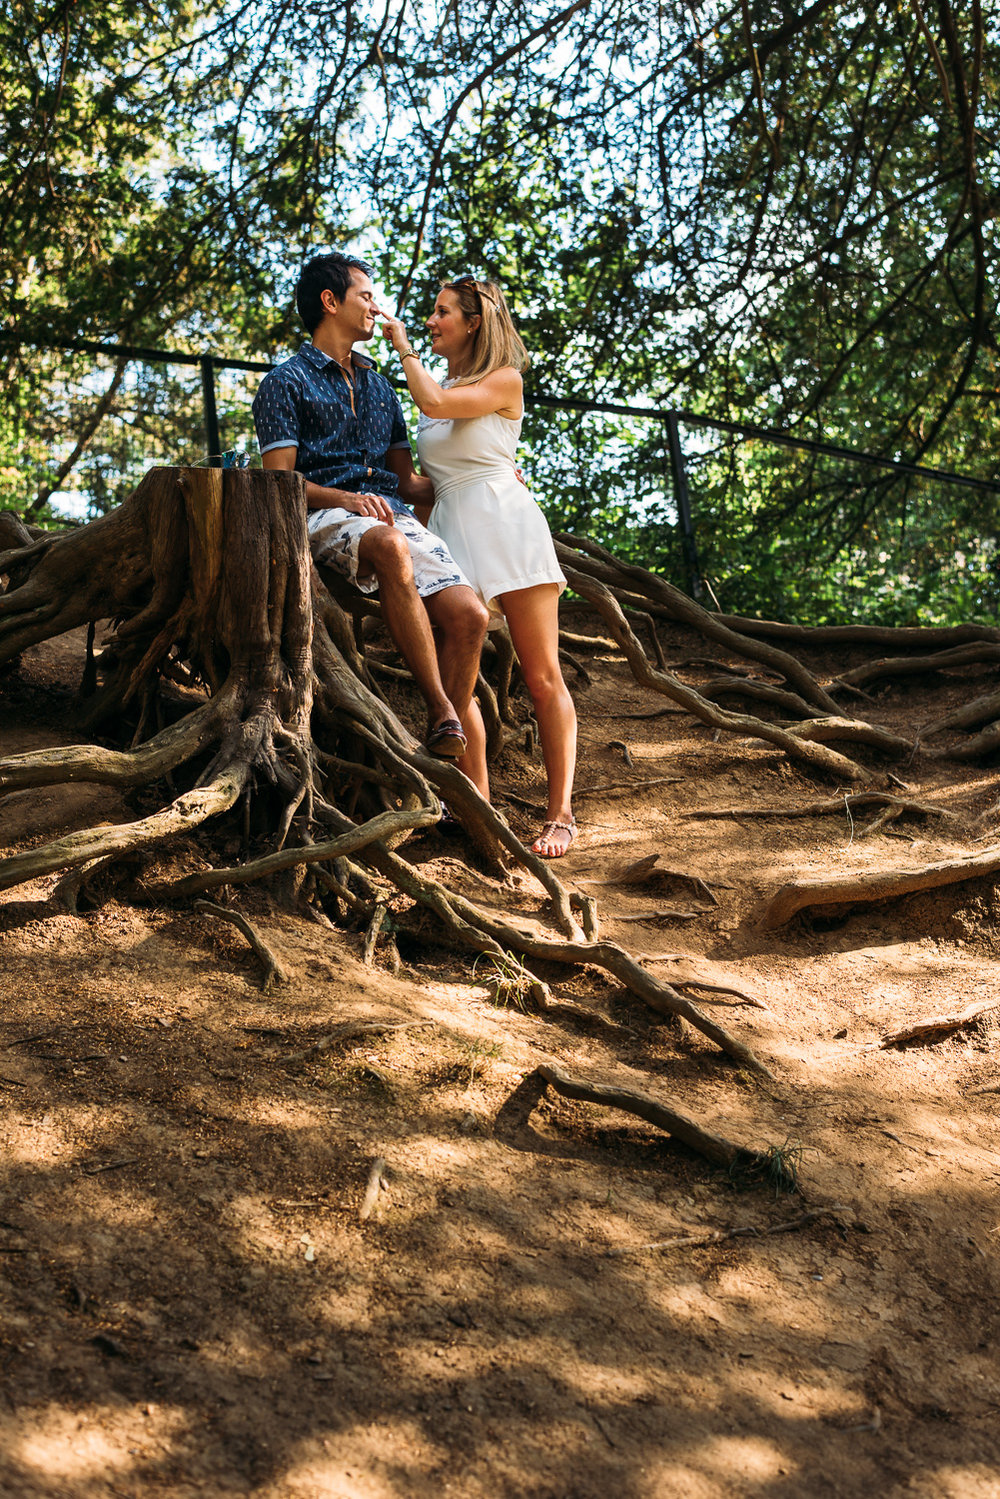 summery-richmond-park-engagement-shoot-53.jpg